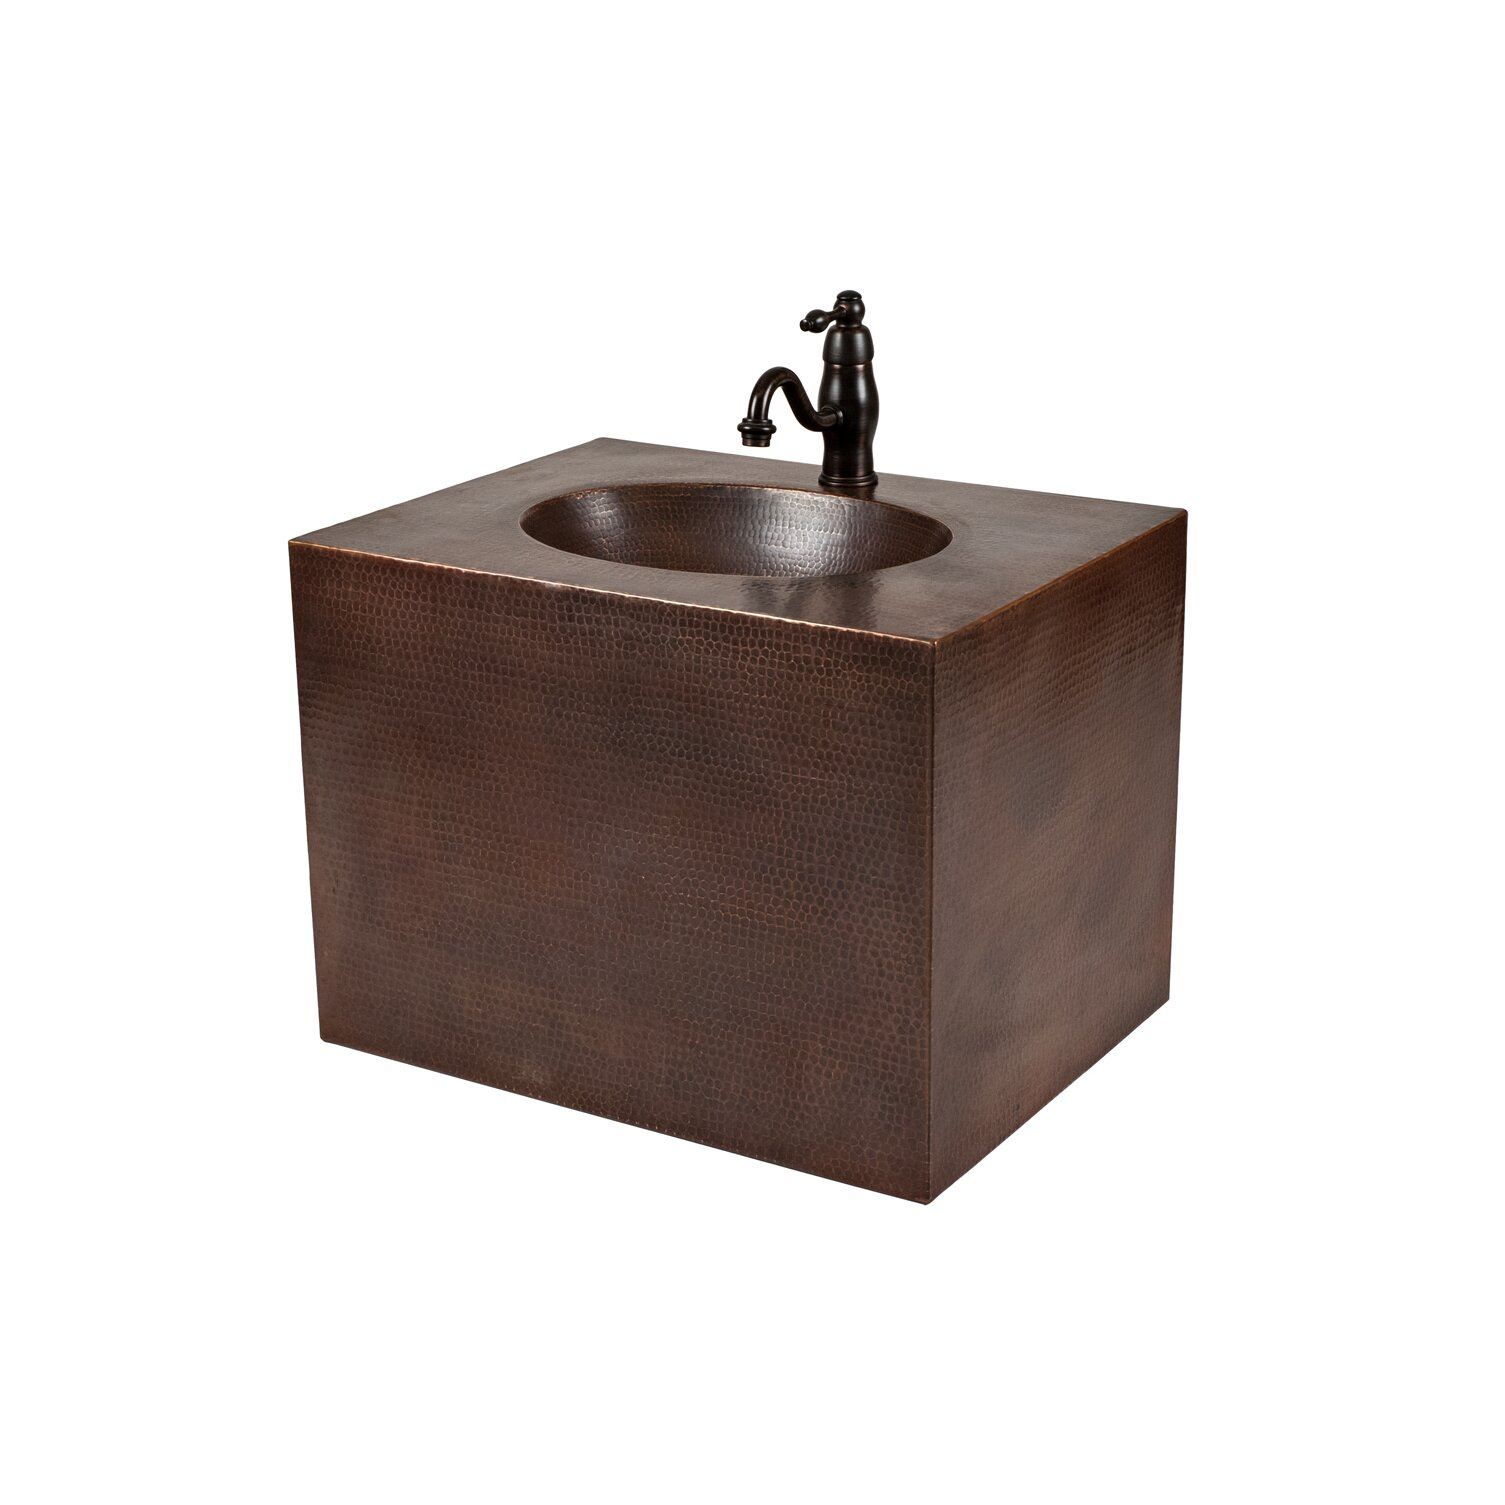 Premier Copper Products 24 Single Hand Hammered Copper Wall Mount Bathroom Vanity Set Reviews